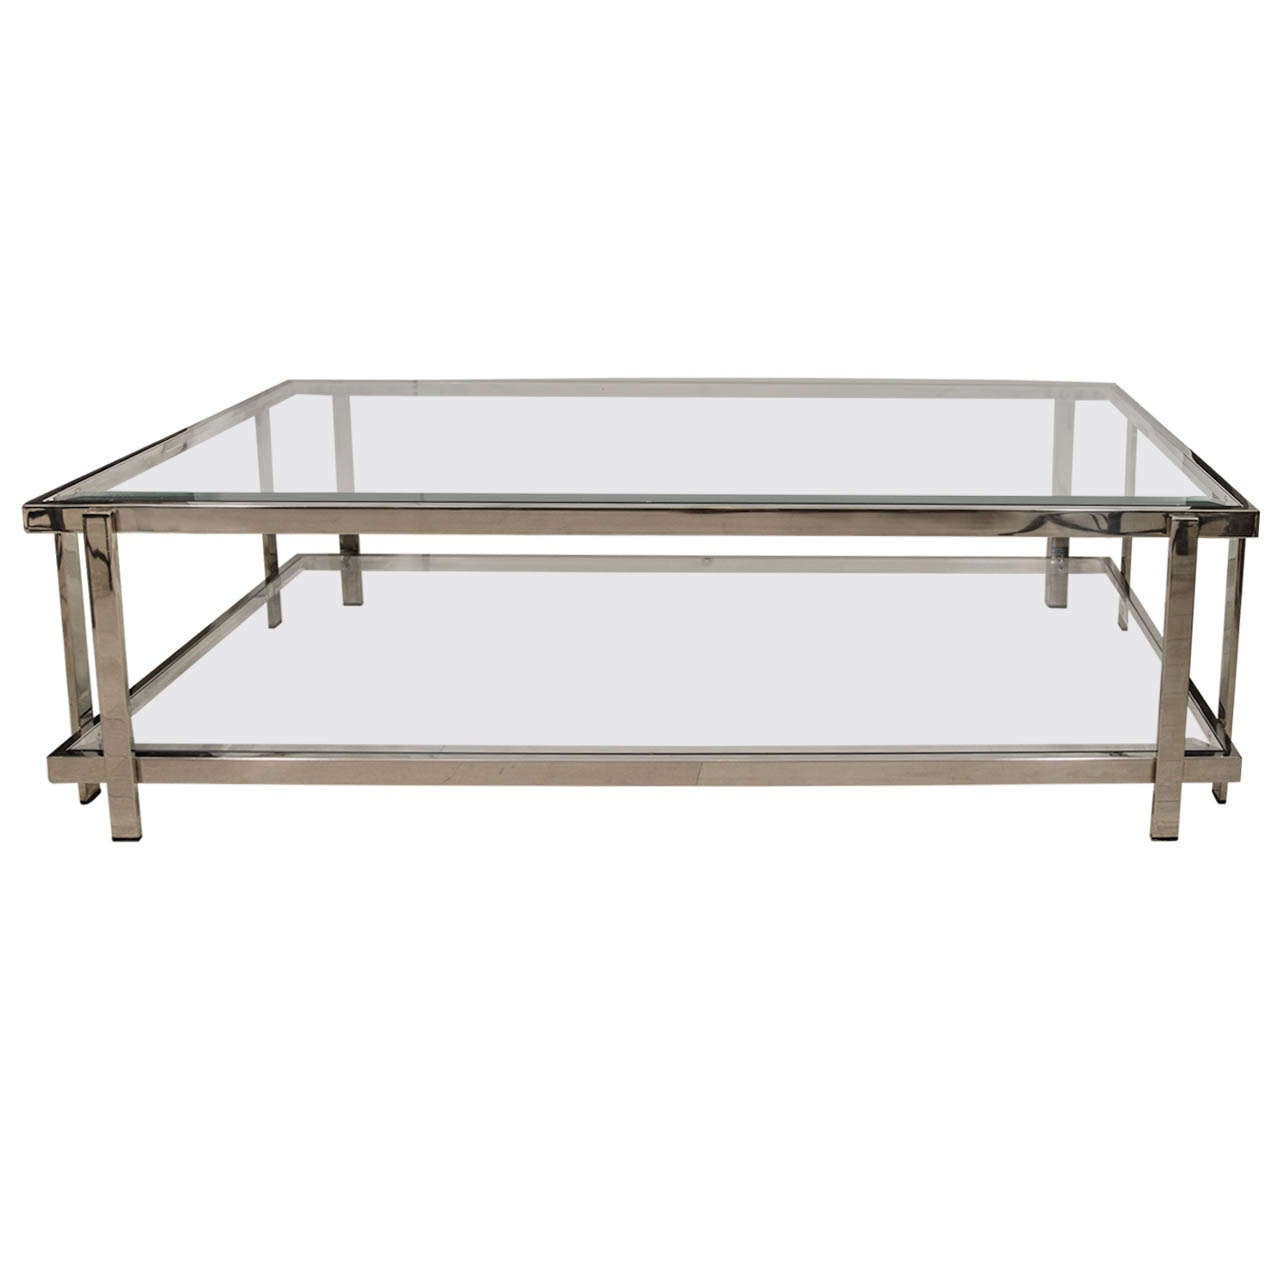 French two tiered nickel and glass coffee table at 1stdibs for French glass coffee table